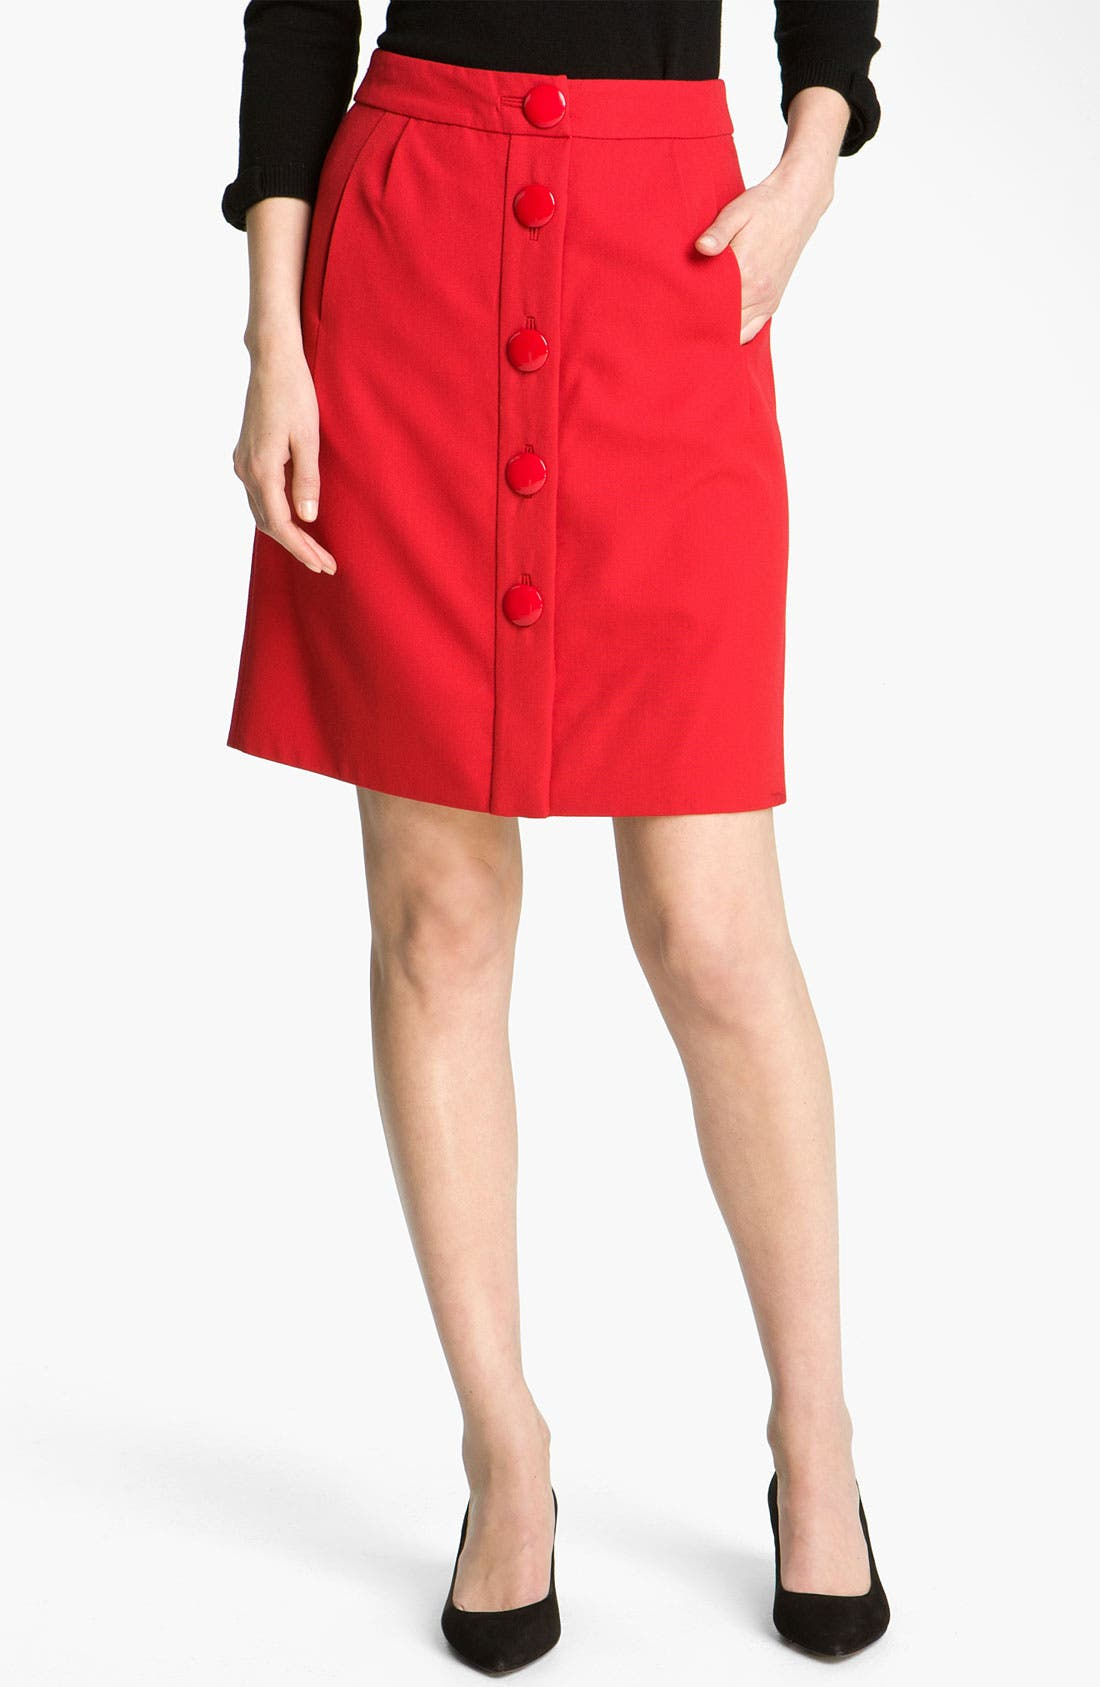 Alternate Image 1 Selected - kate spade new york 'faylyn' skirt